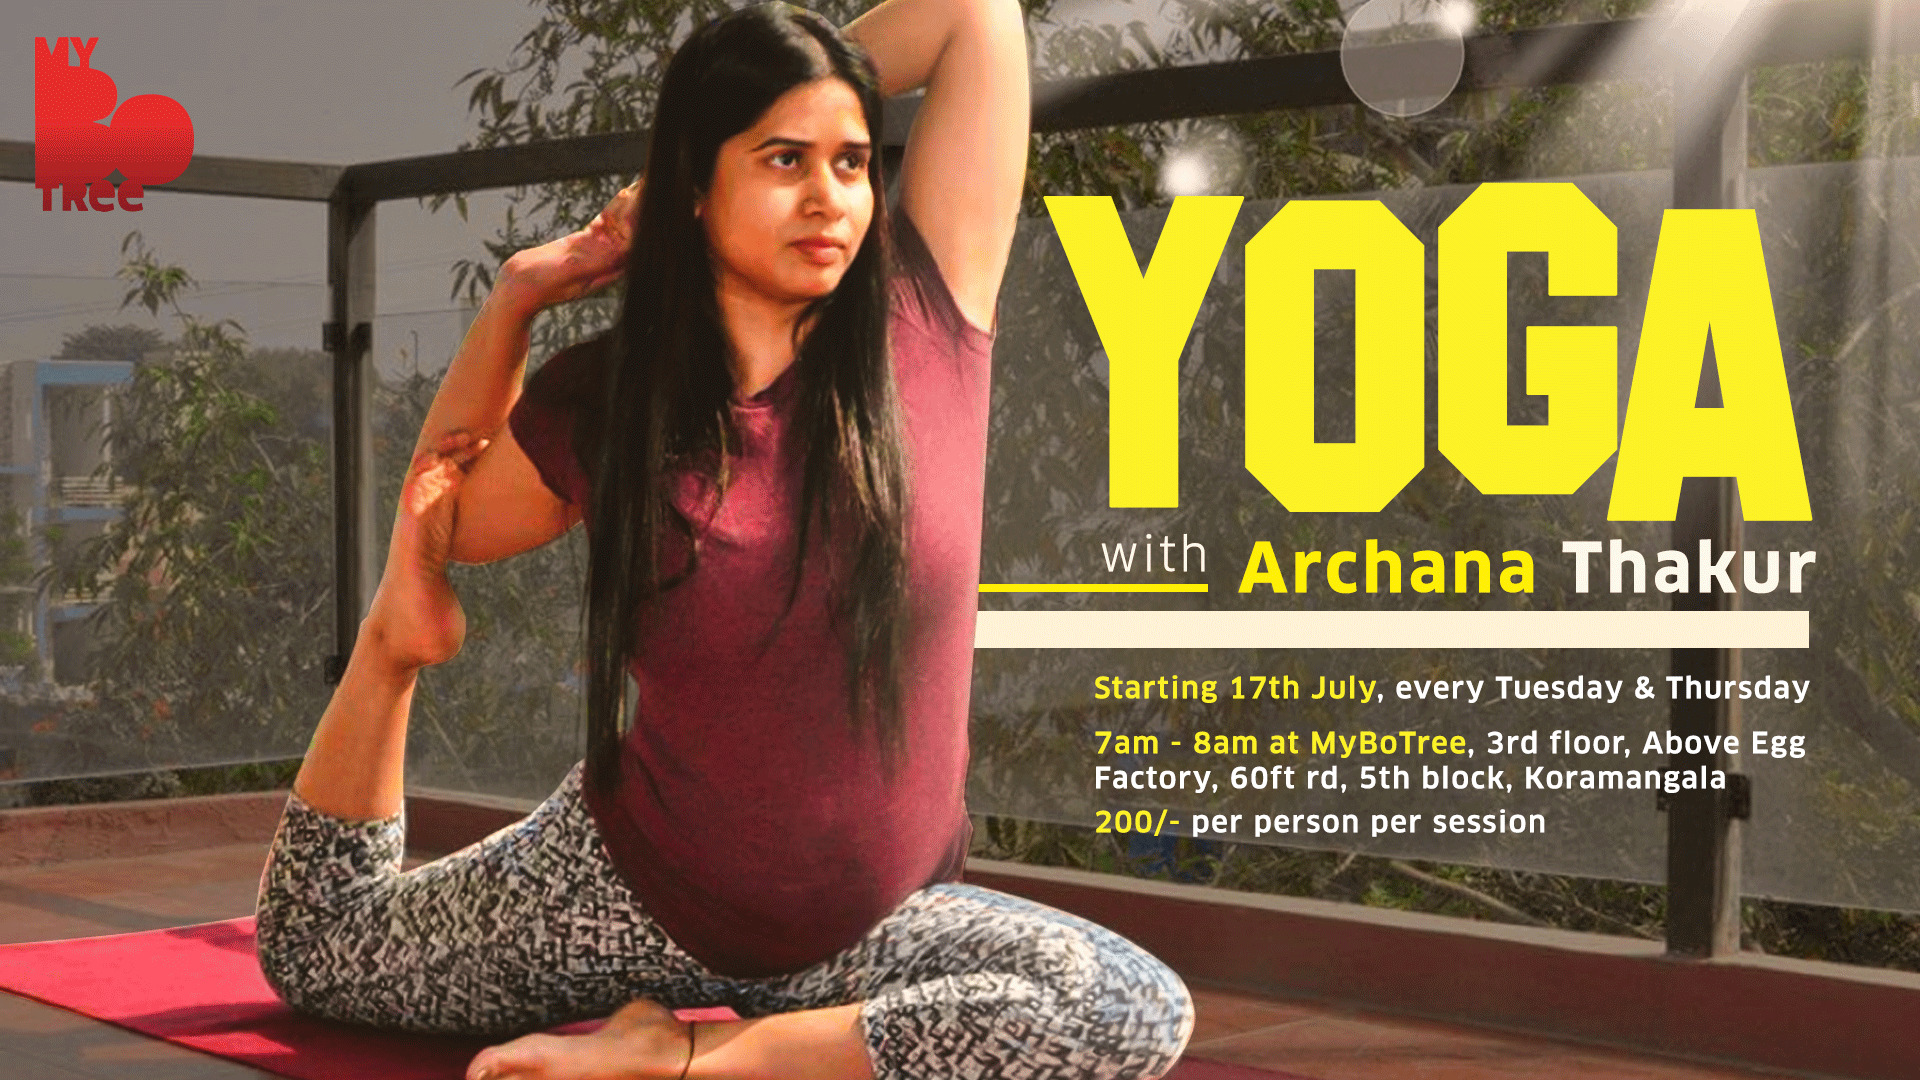 Yoga with Archana Thakur